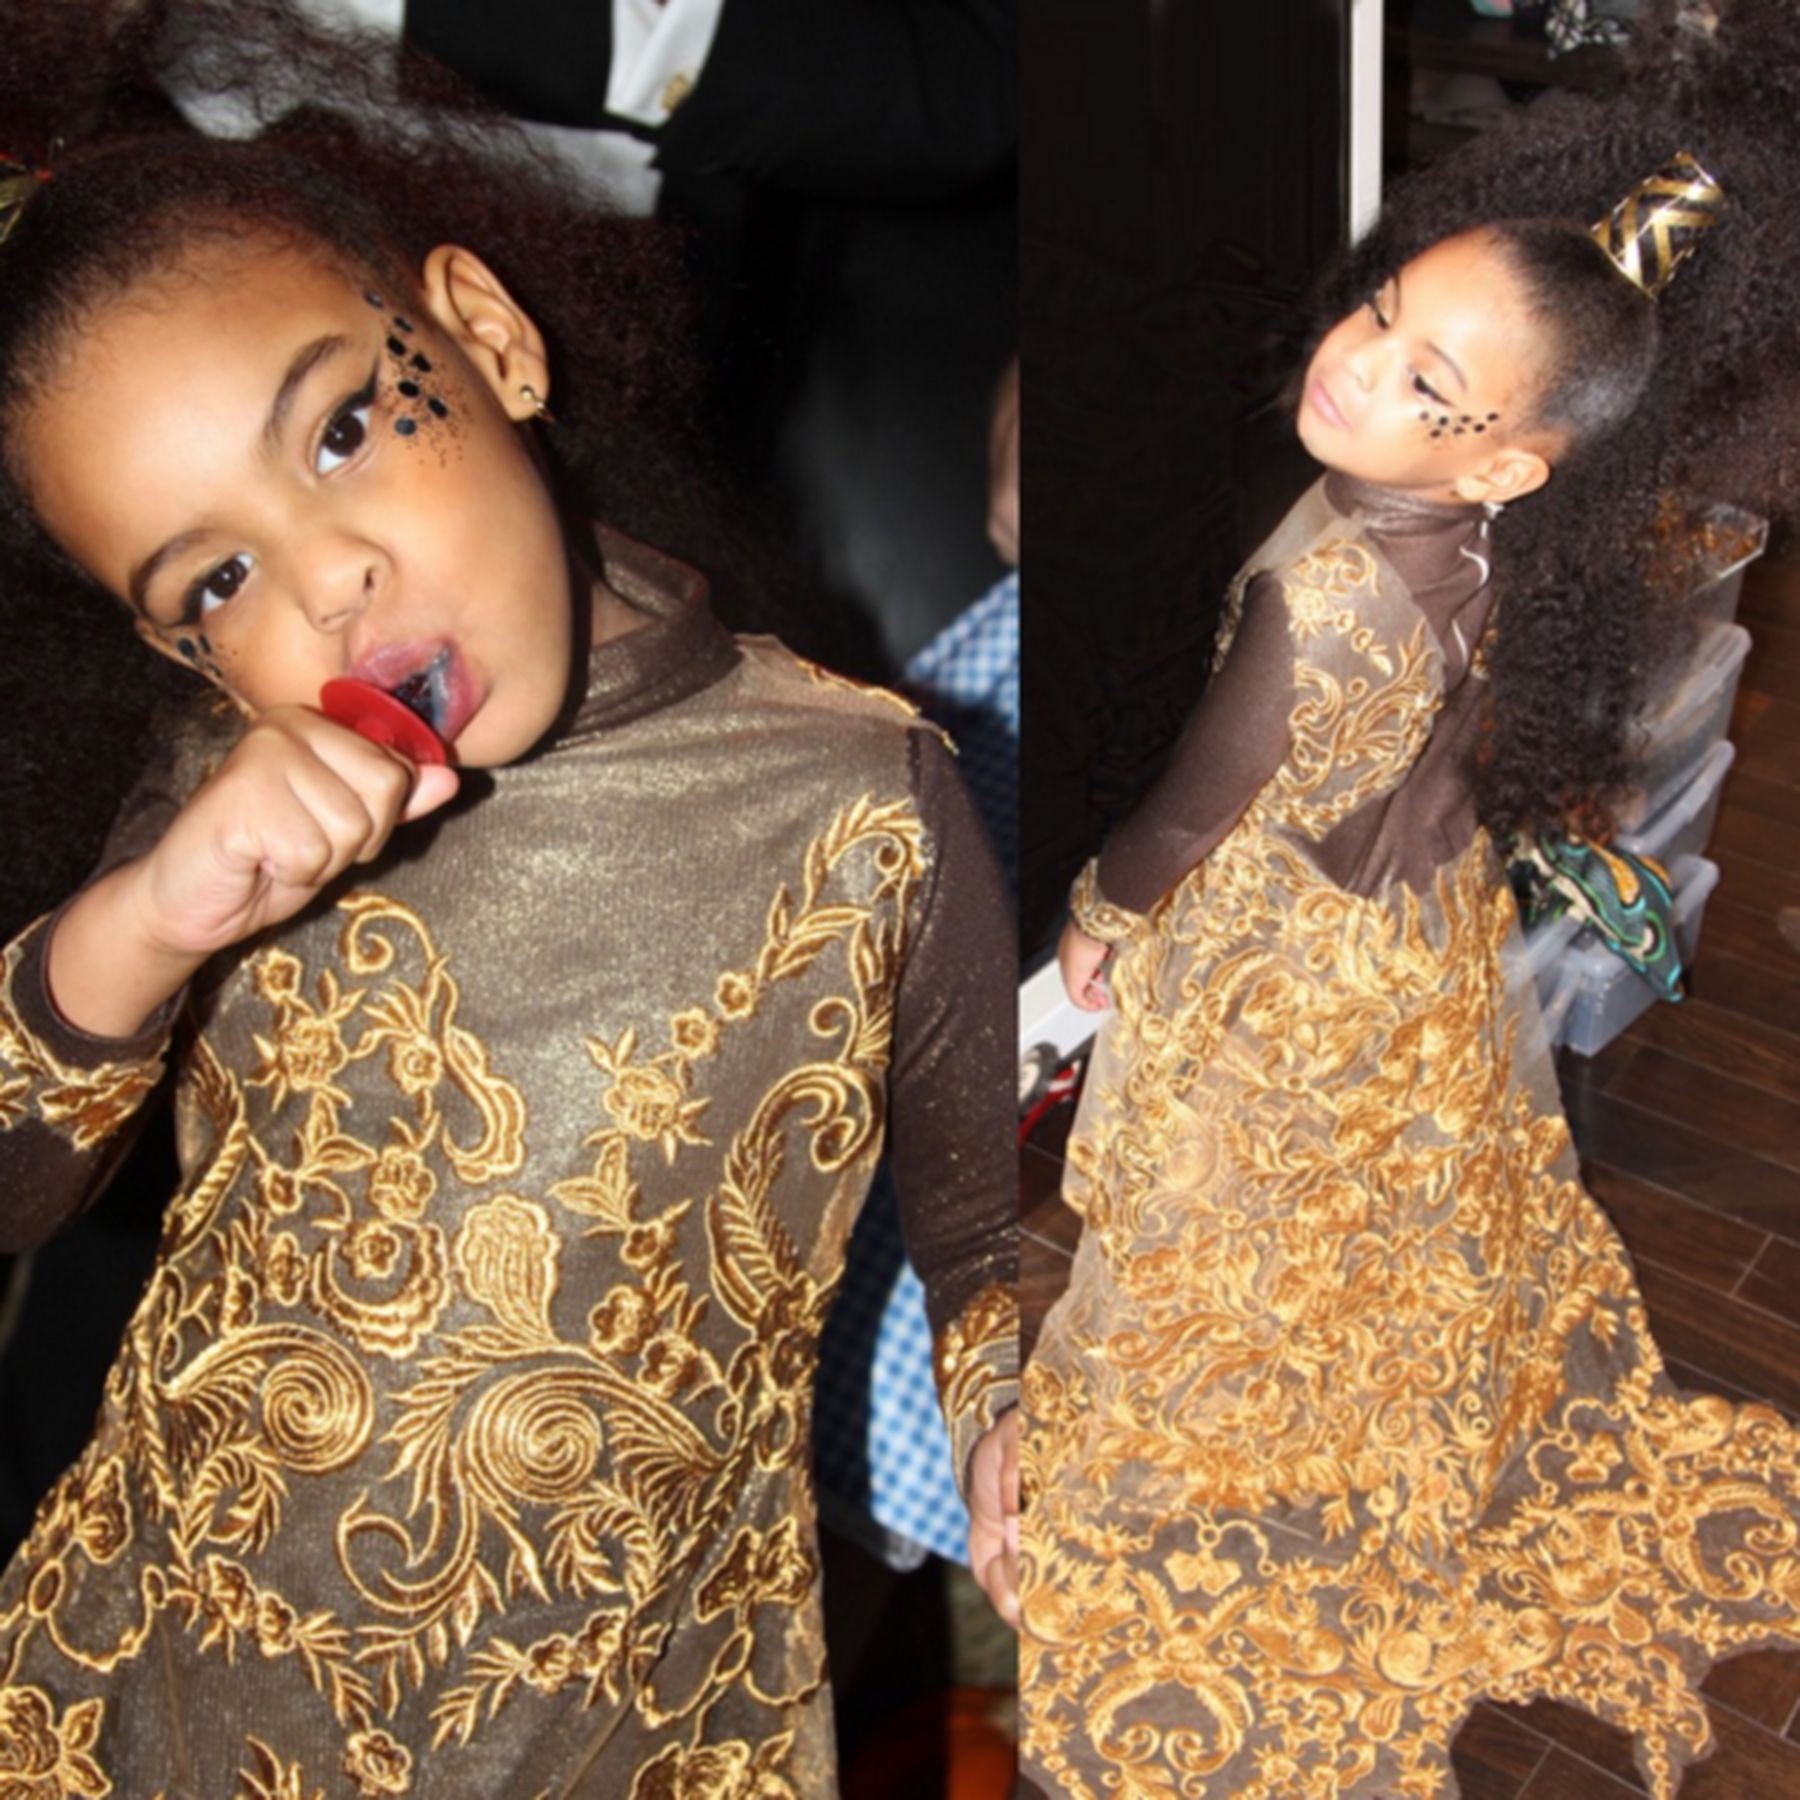 10 Blue Ivy Photos That Will Make You Go Quot Awww Quot Trace Tv